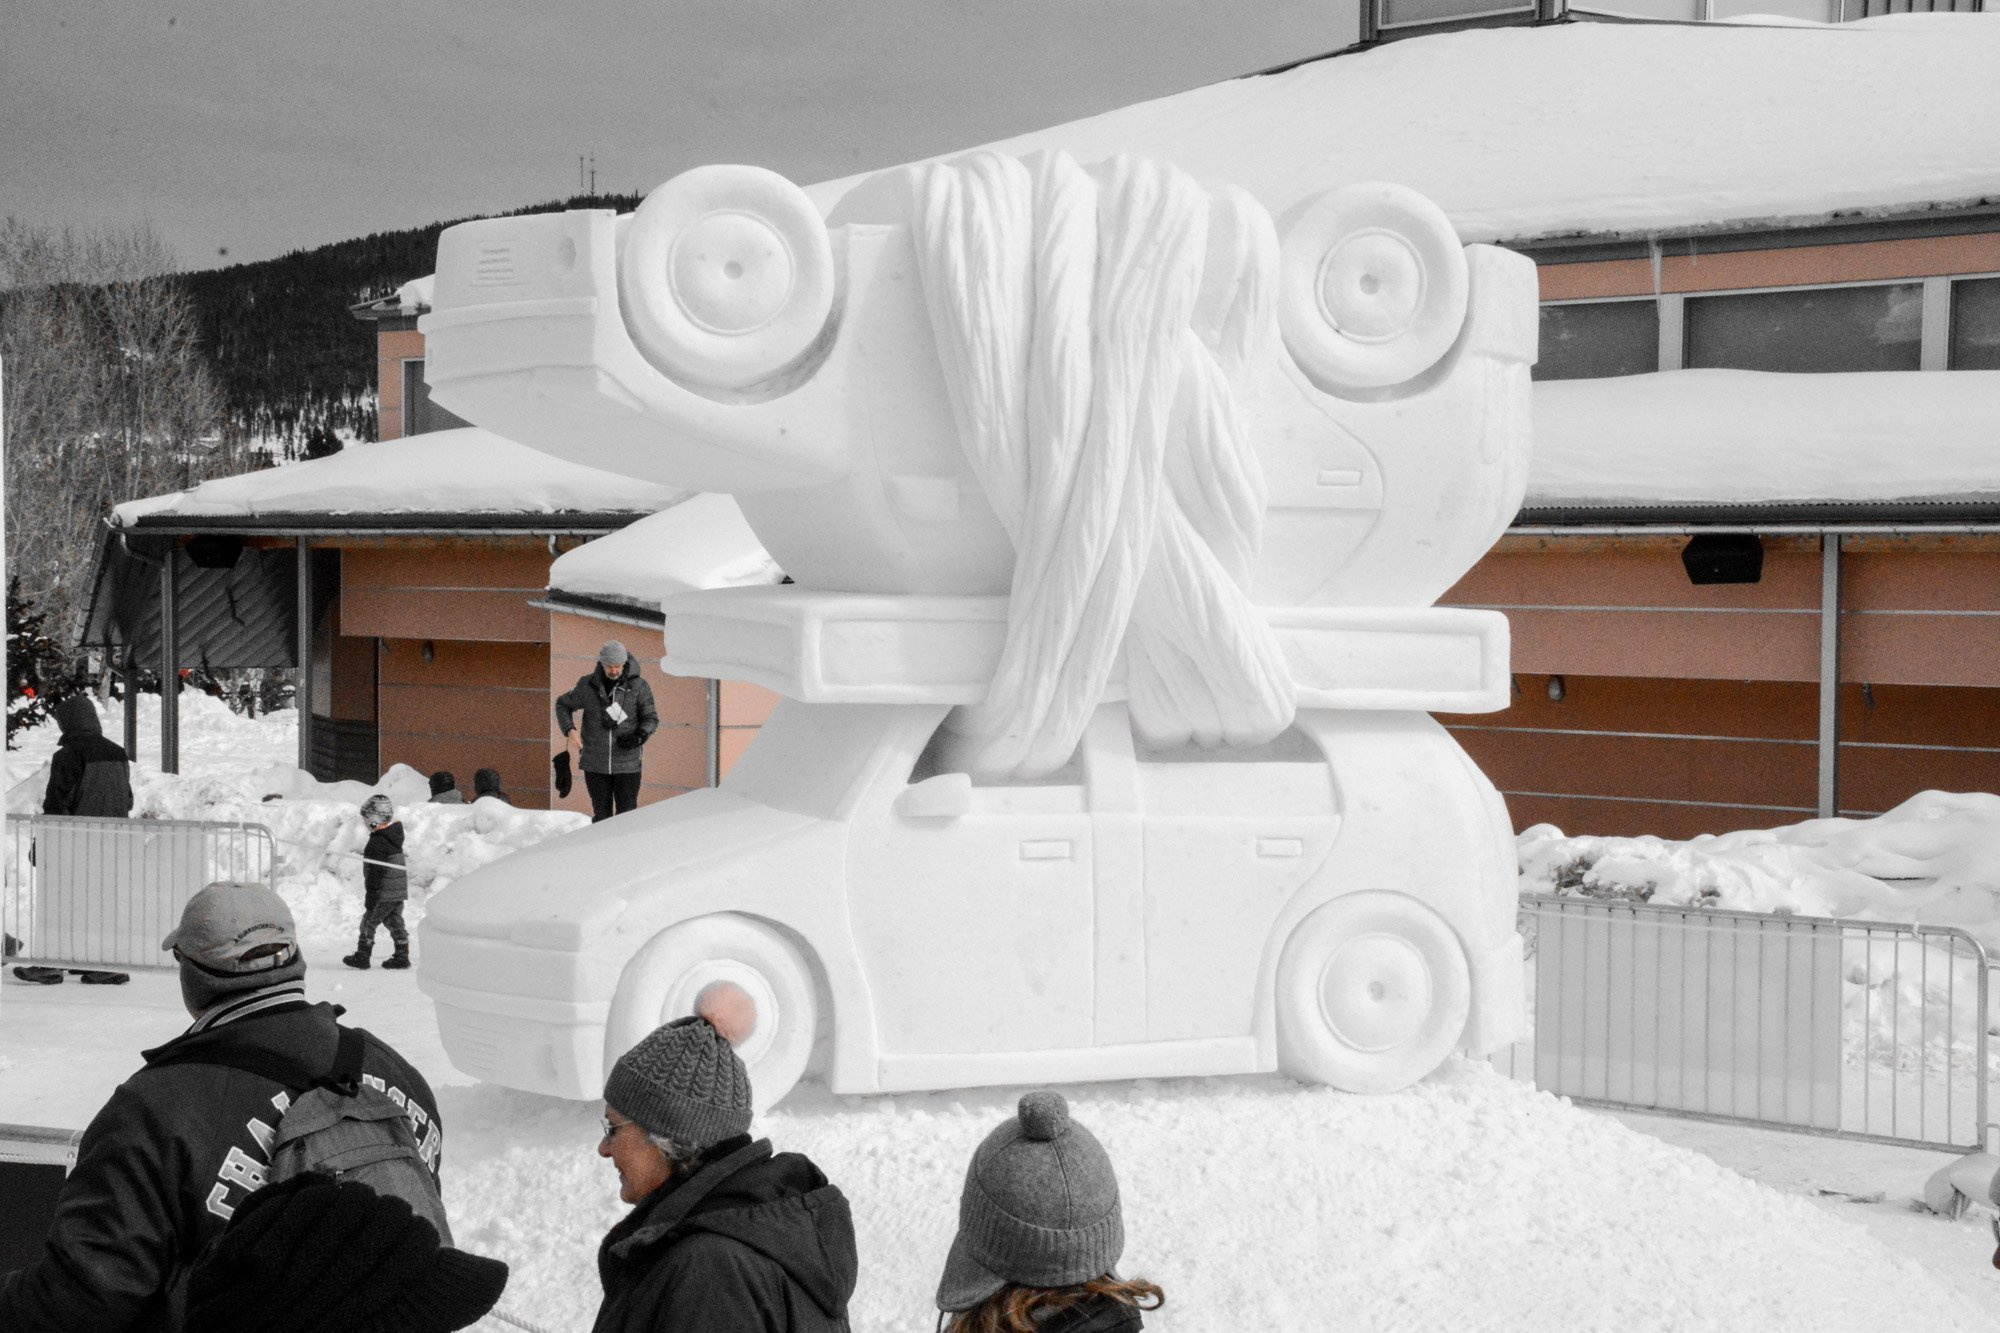 Breckenridge International Snow Sculpture Championships - 2017 Second place